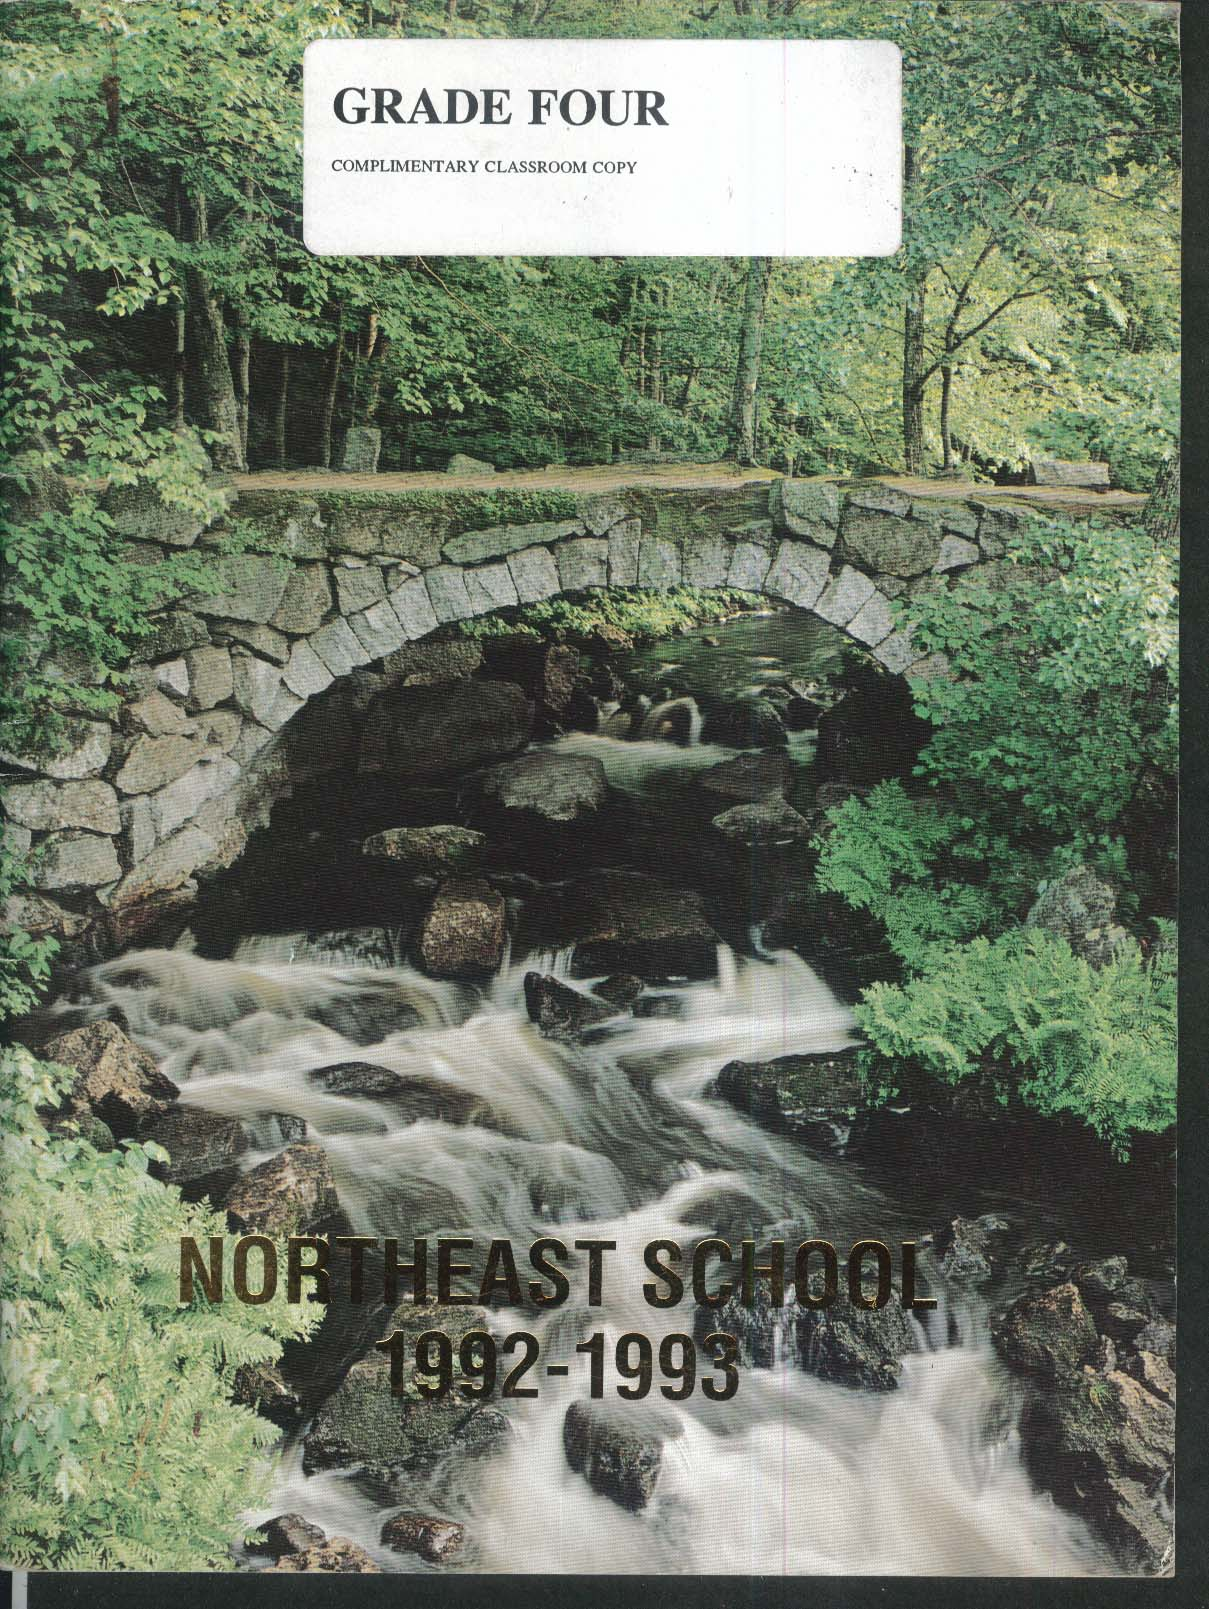 Image for Northeast School Vernon Connecticut CT 1992-1993 Yearbook Grade 4 Classroom Copy